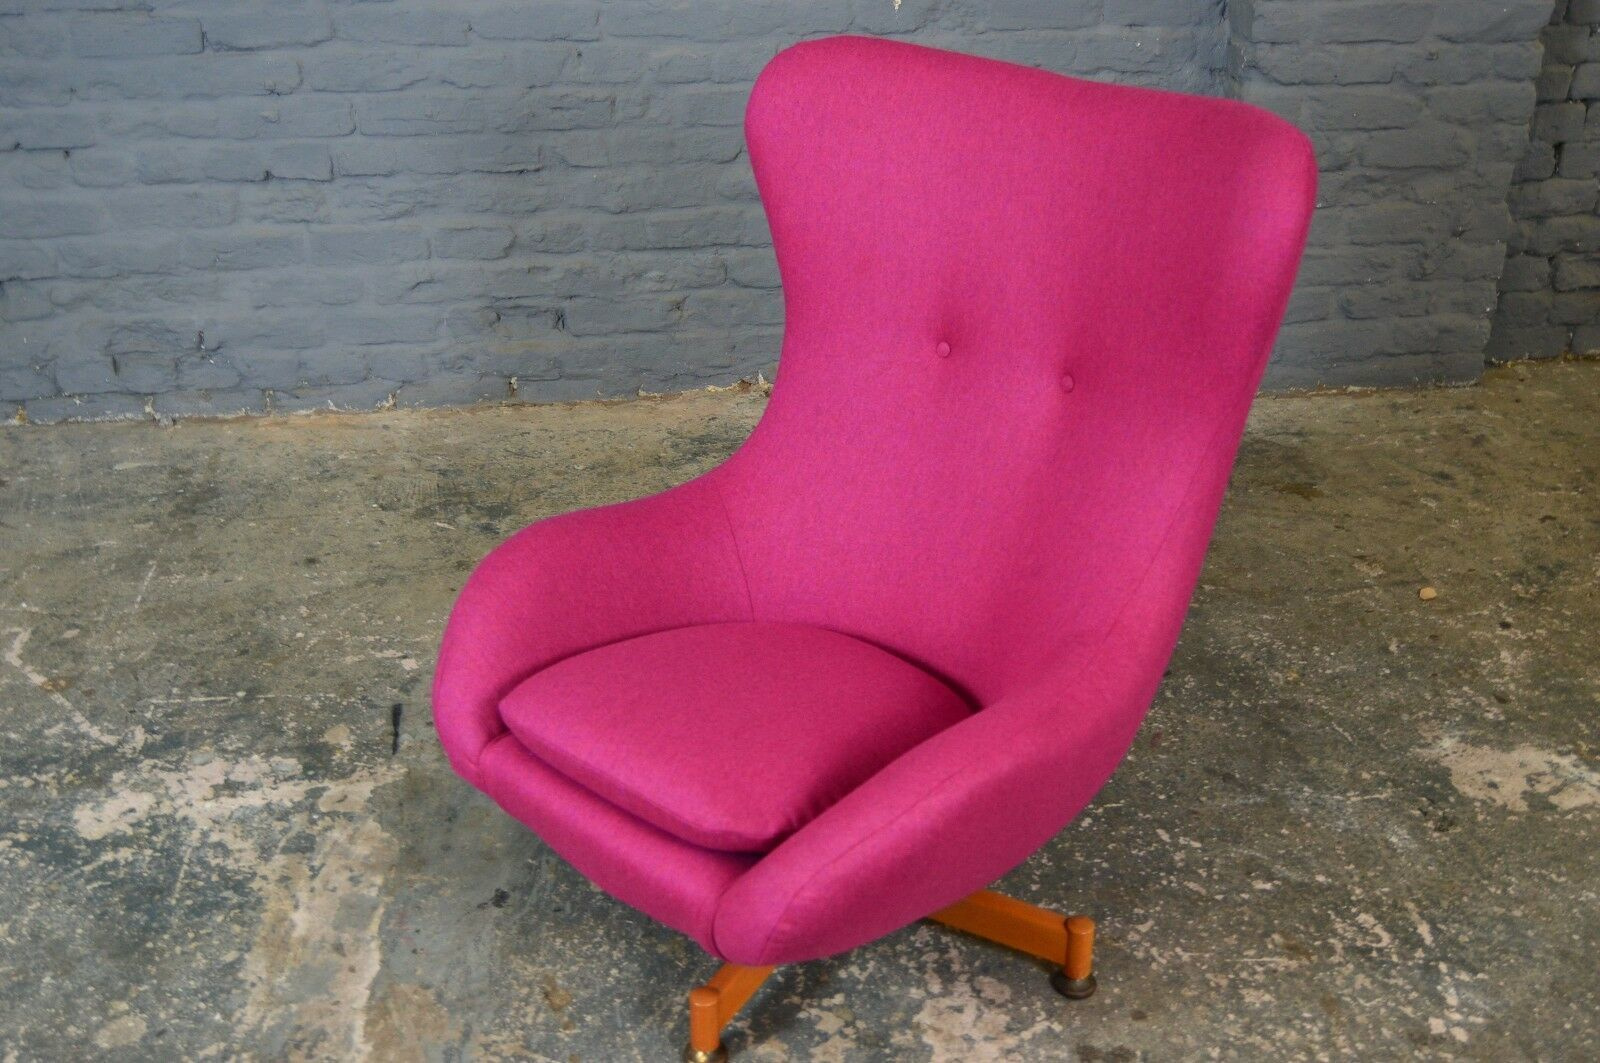 Pink Egg Chair Vintage Retro Mid Century Greaves Thomas Egg Chair New Raspberry Pink Wool